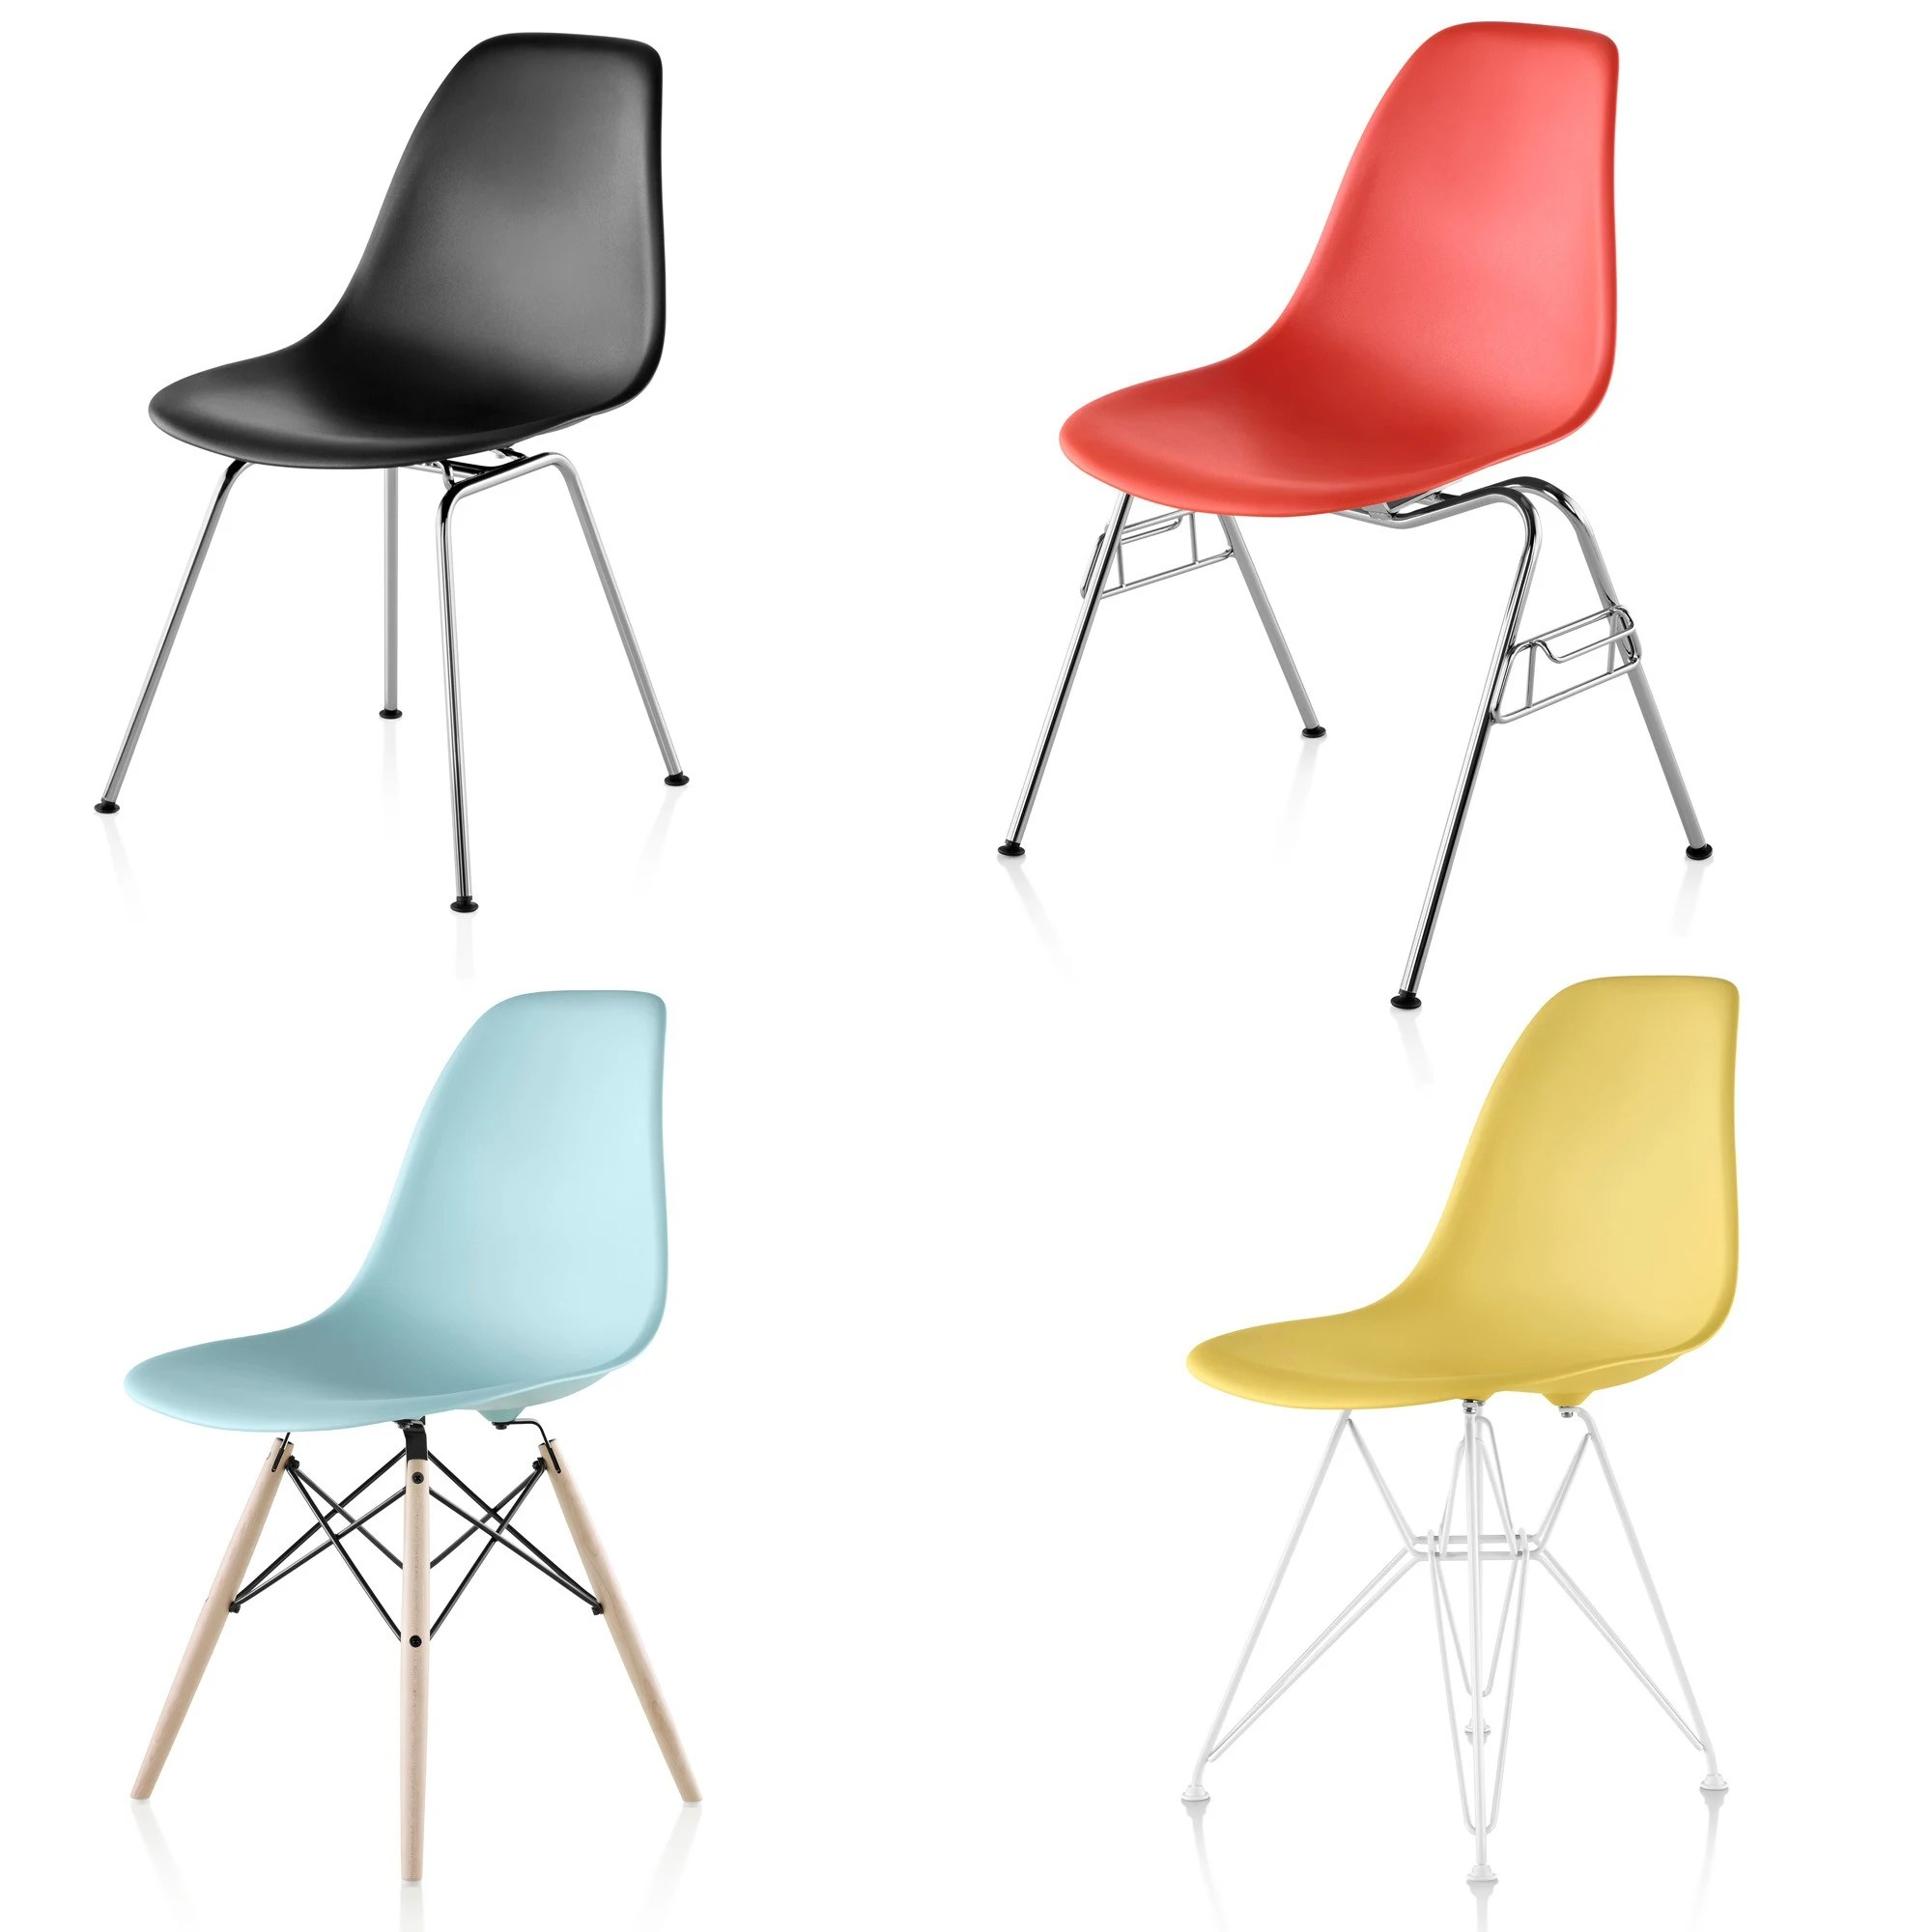 eames molded side chair luxury dining chairs australia herman miller plastic main jpg